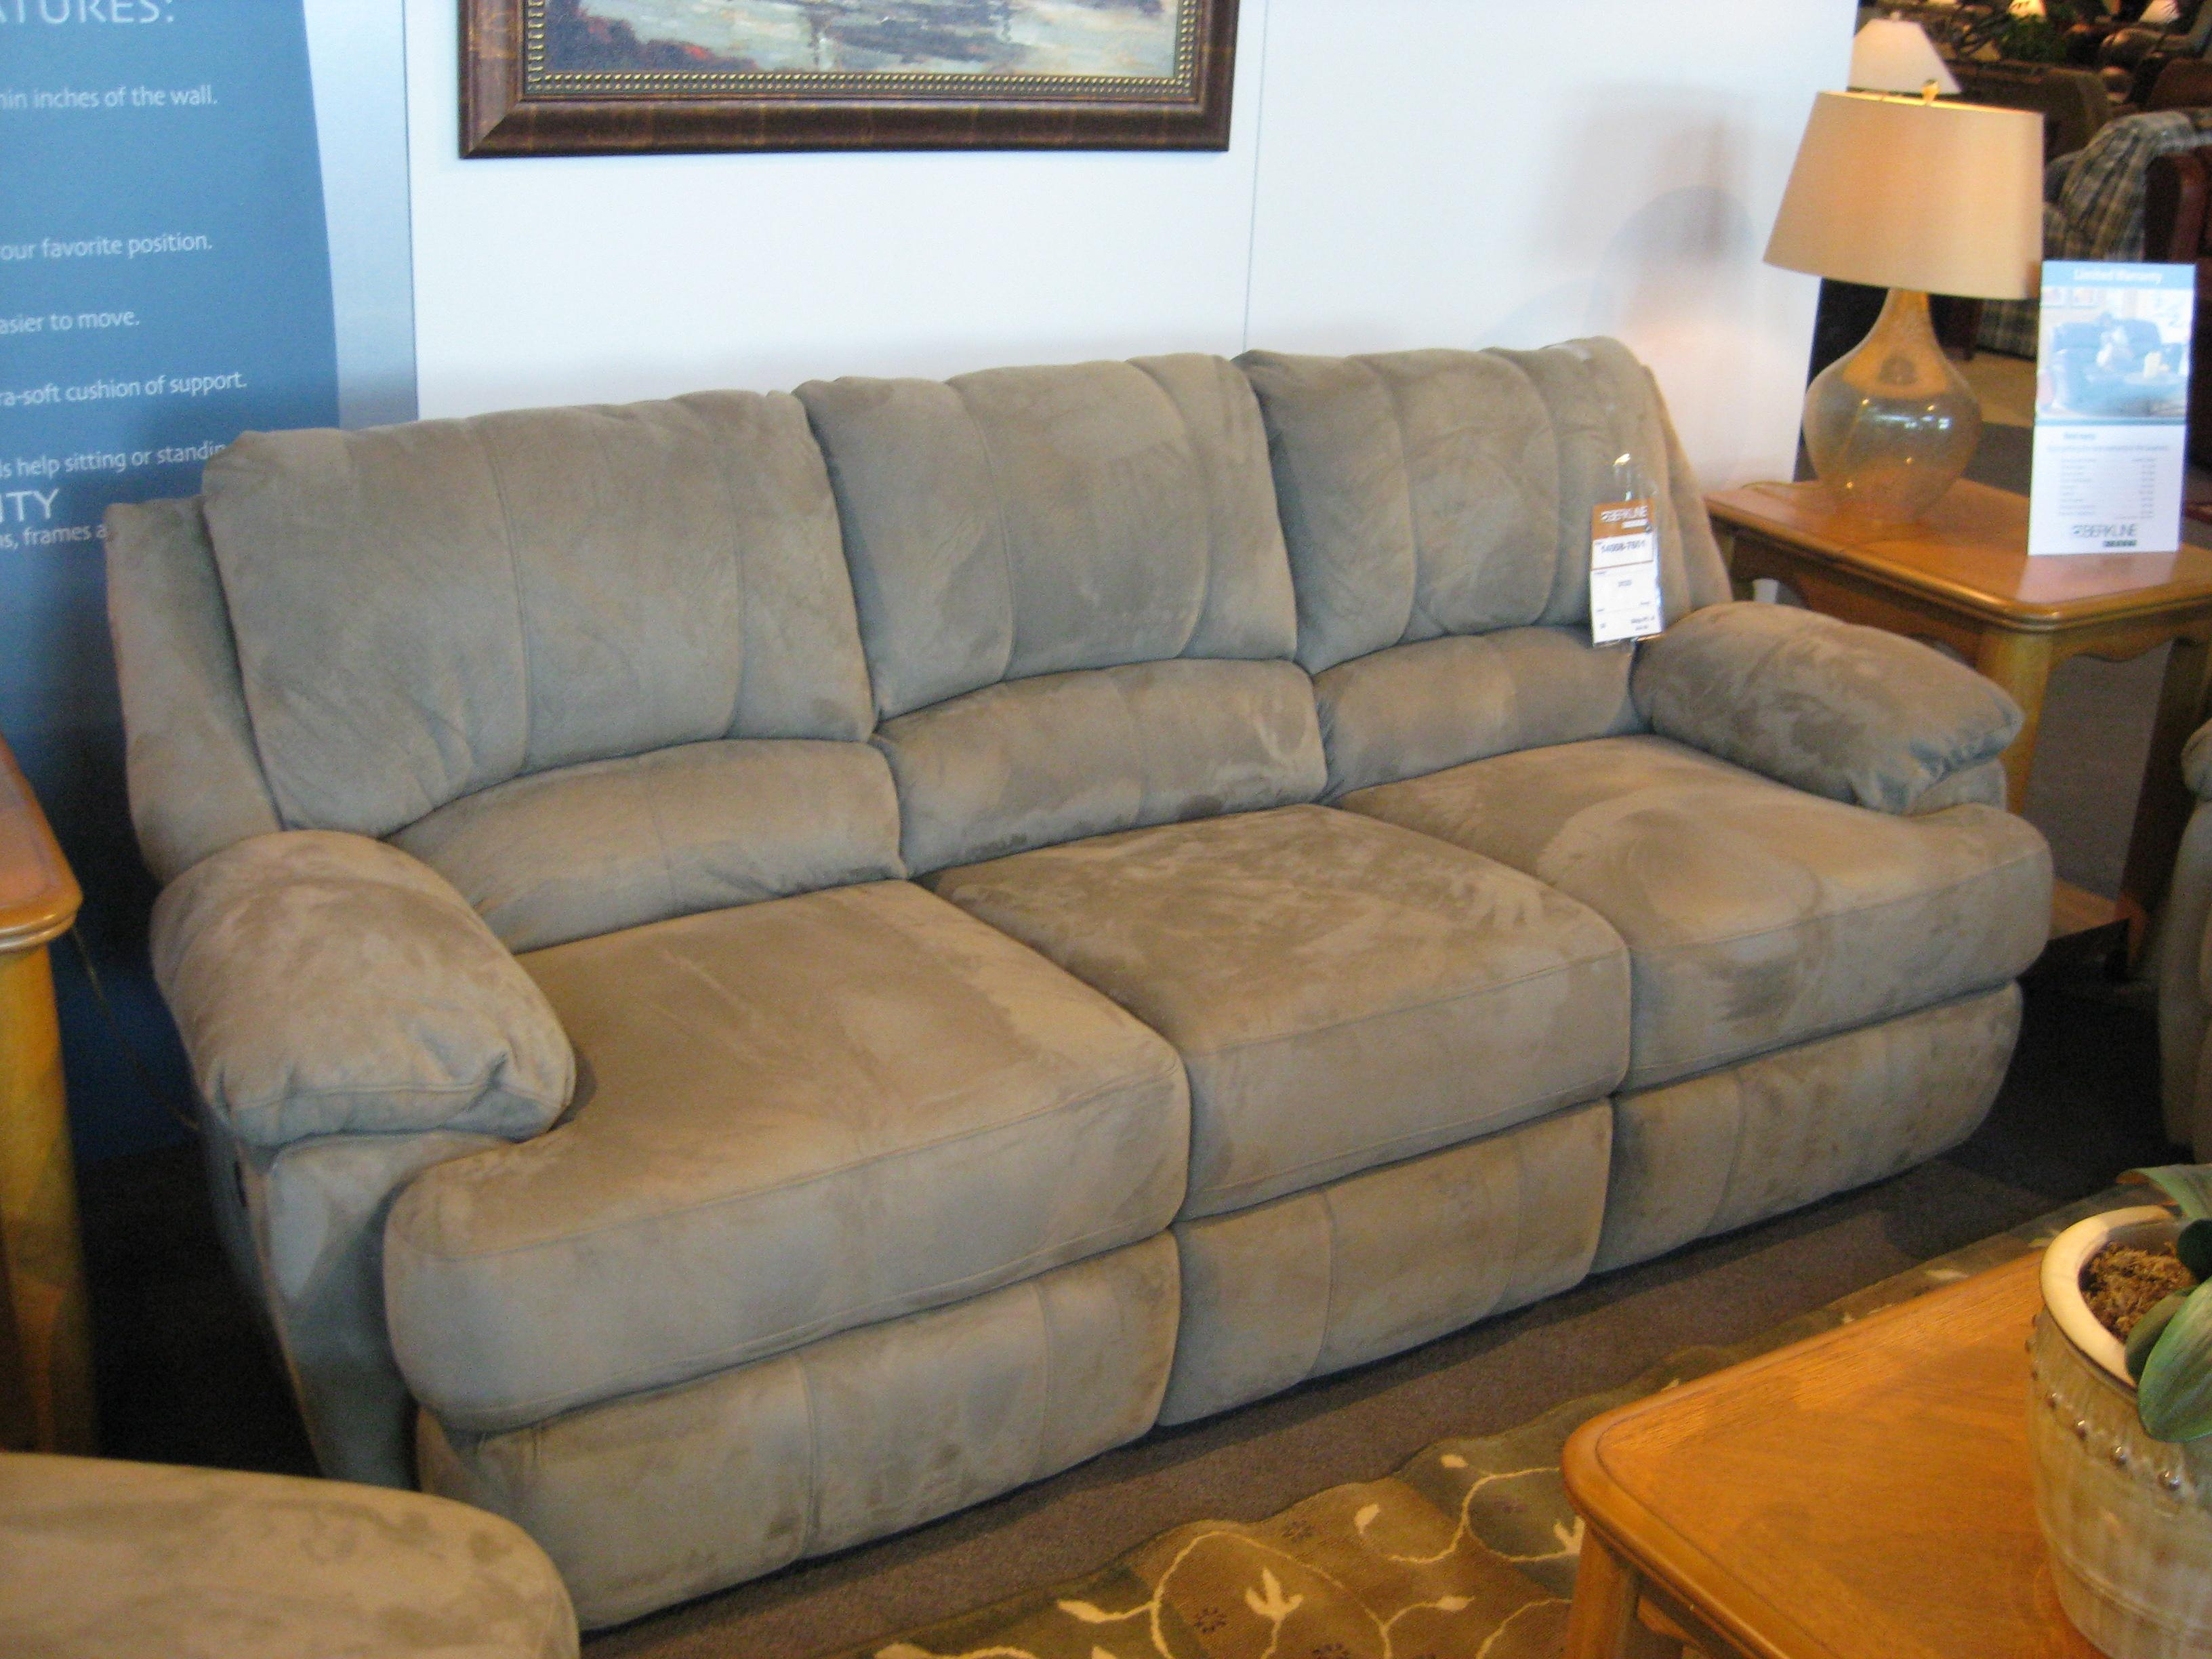 Stunning Leather Sectional Sofa With Power Recliner 17 On Berkline Regarding Berkline Recliner Sofas (Image 20 of 20)